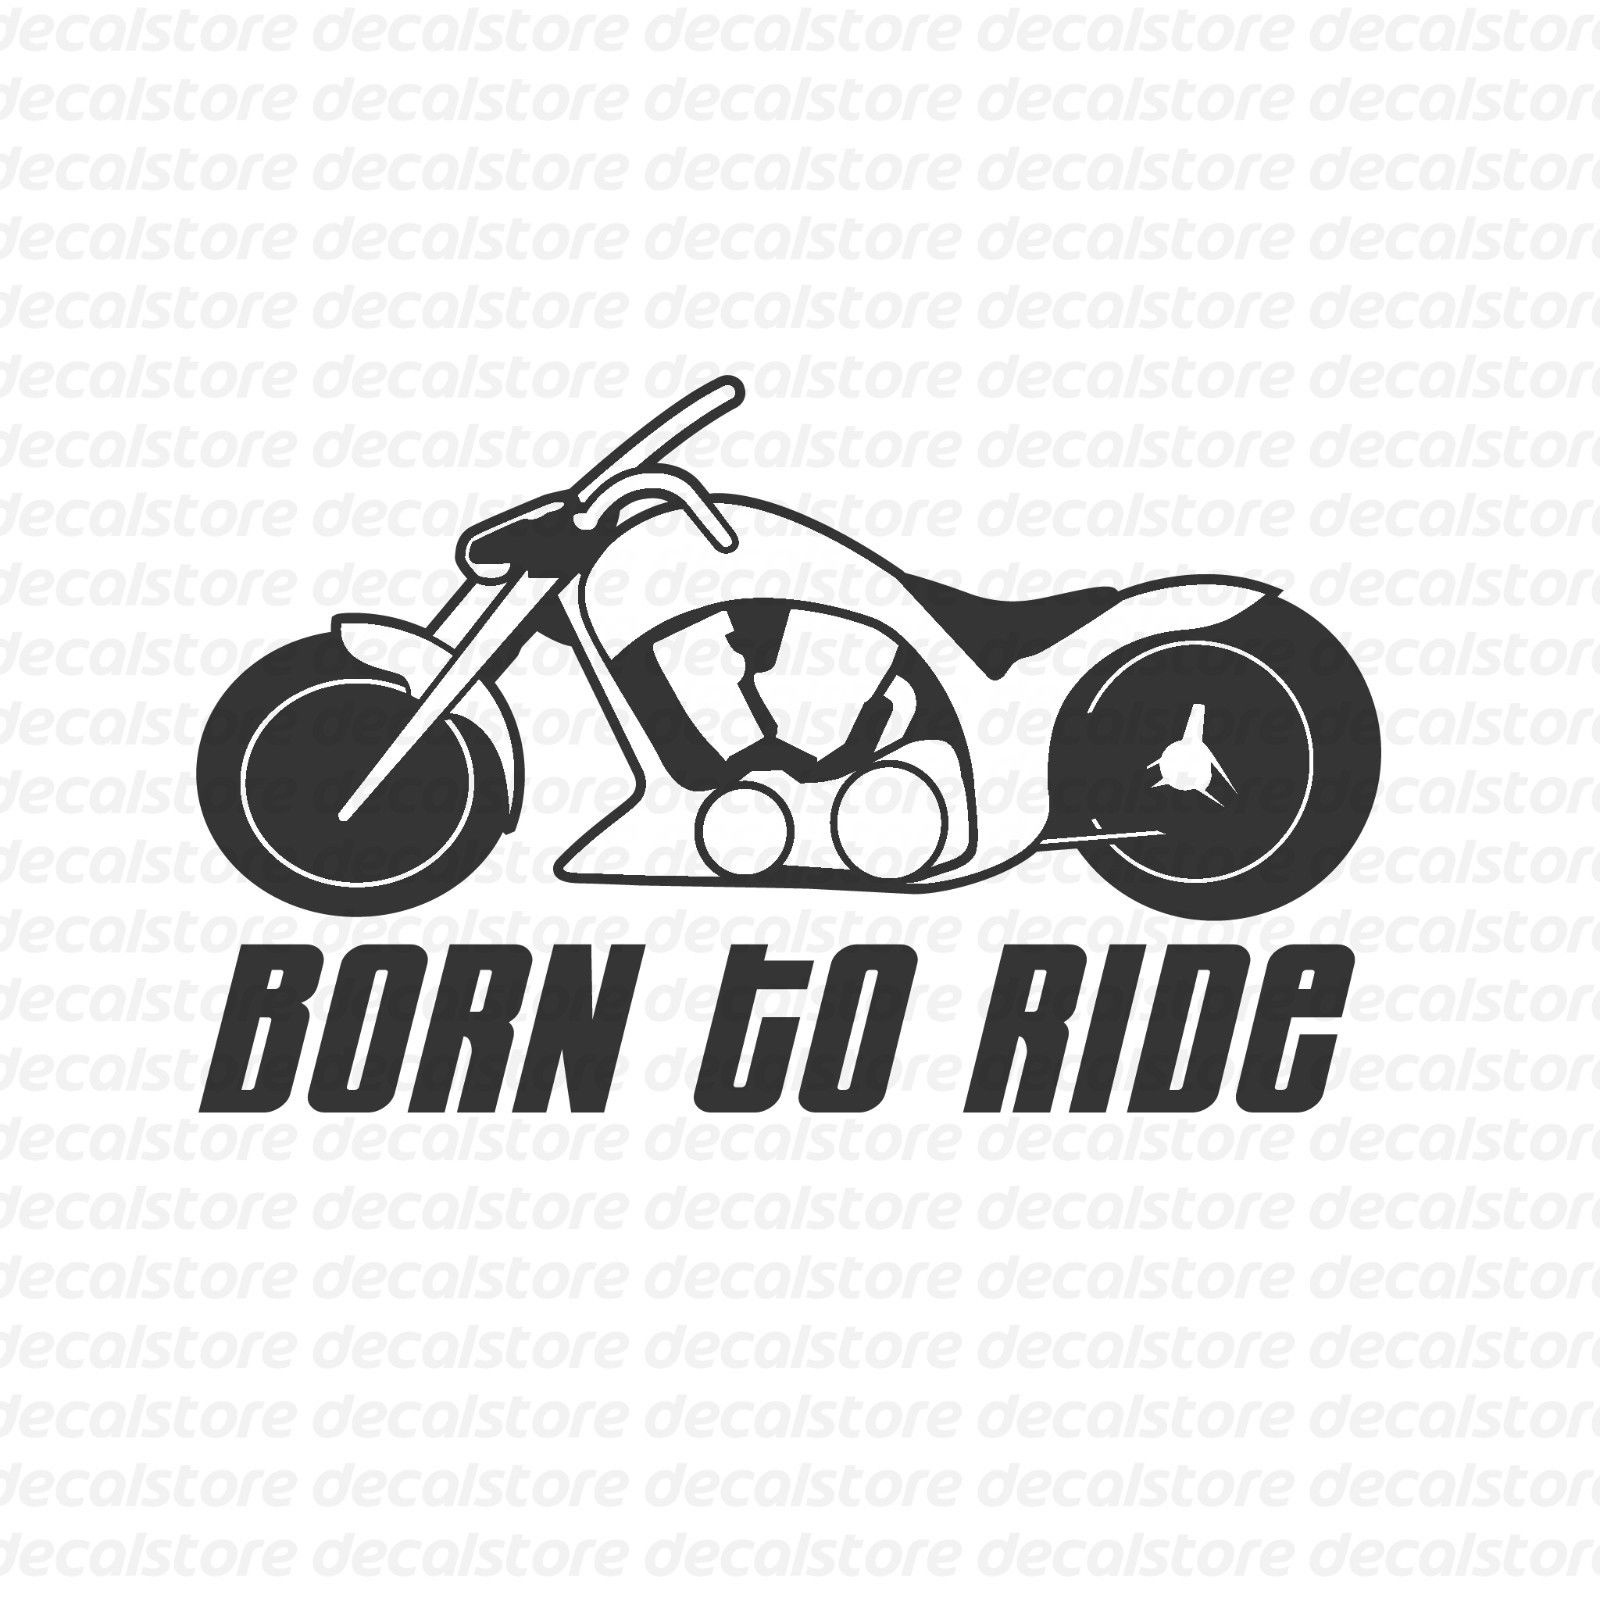 For 2pcs for born to ride motorcycle vinyl decal sticker chopper bike gang sticker m 1